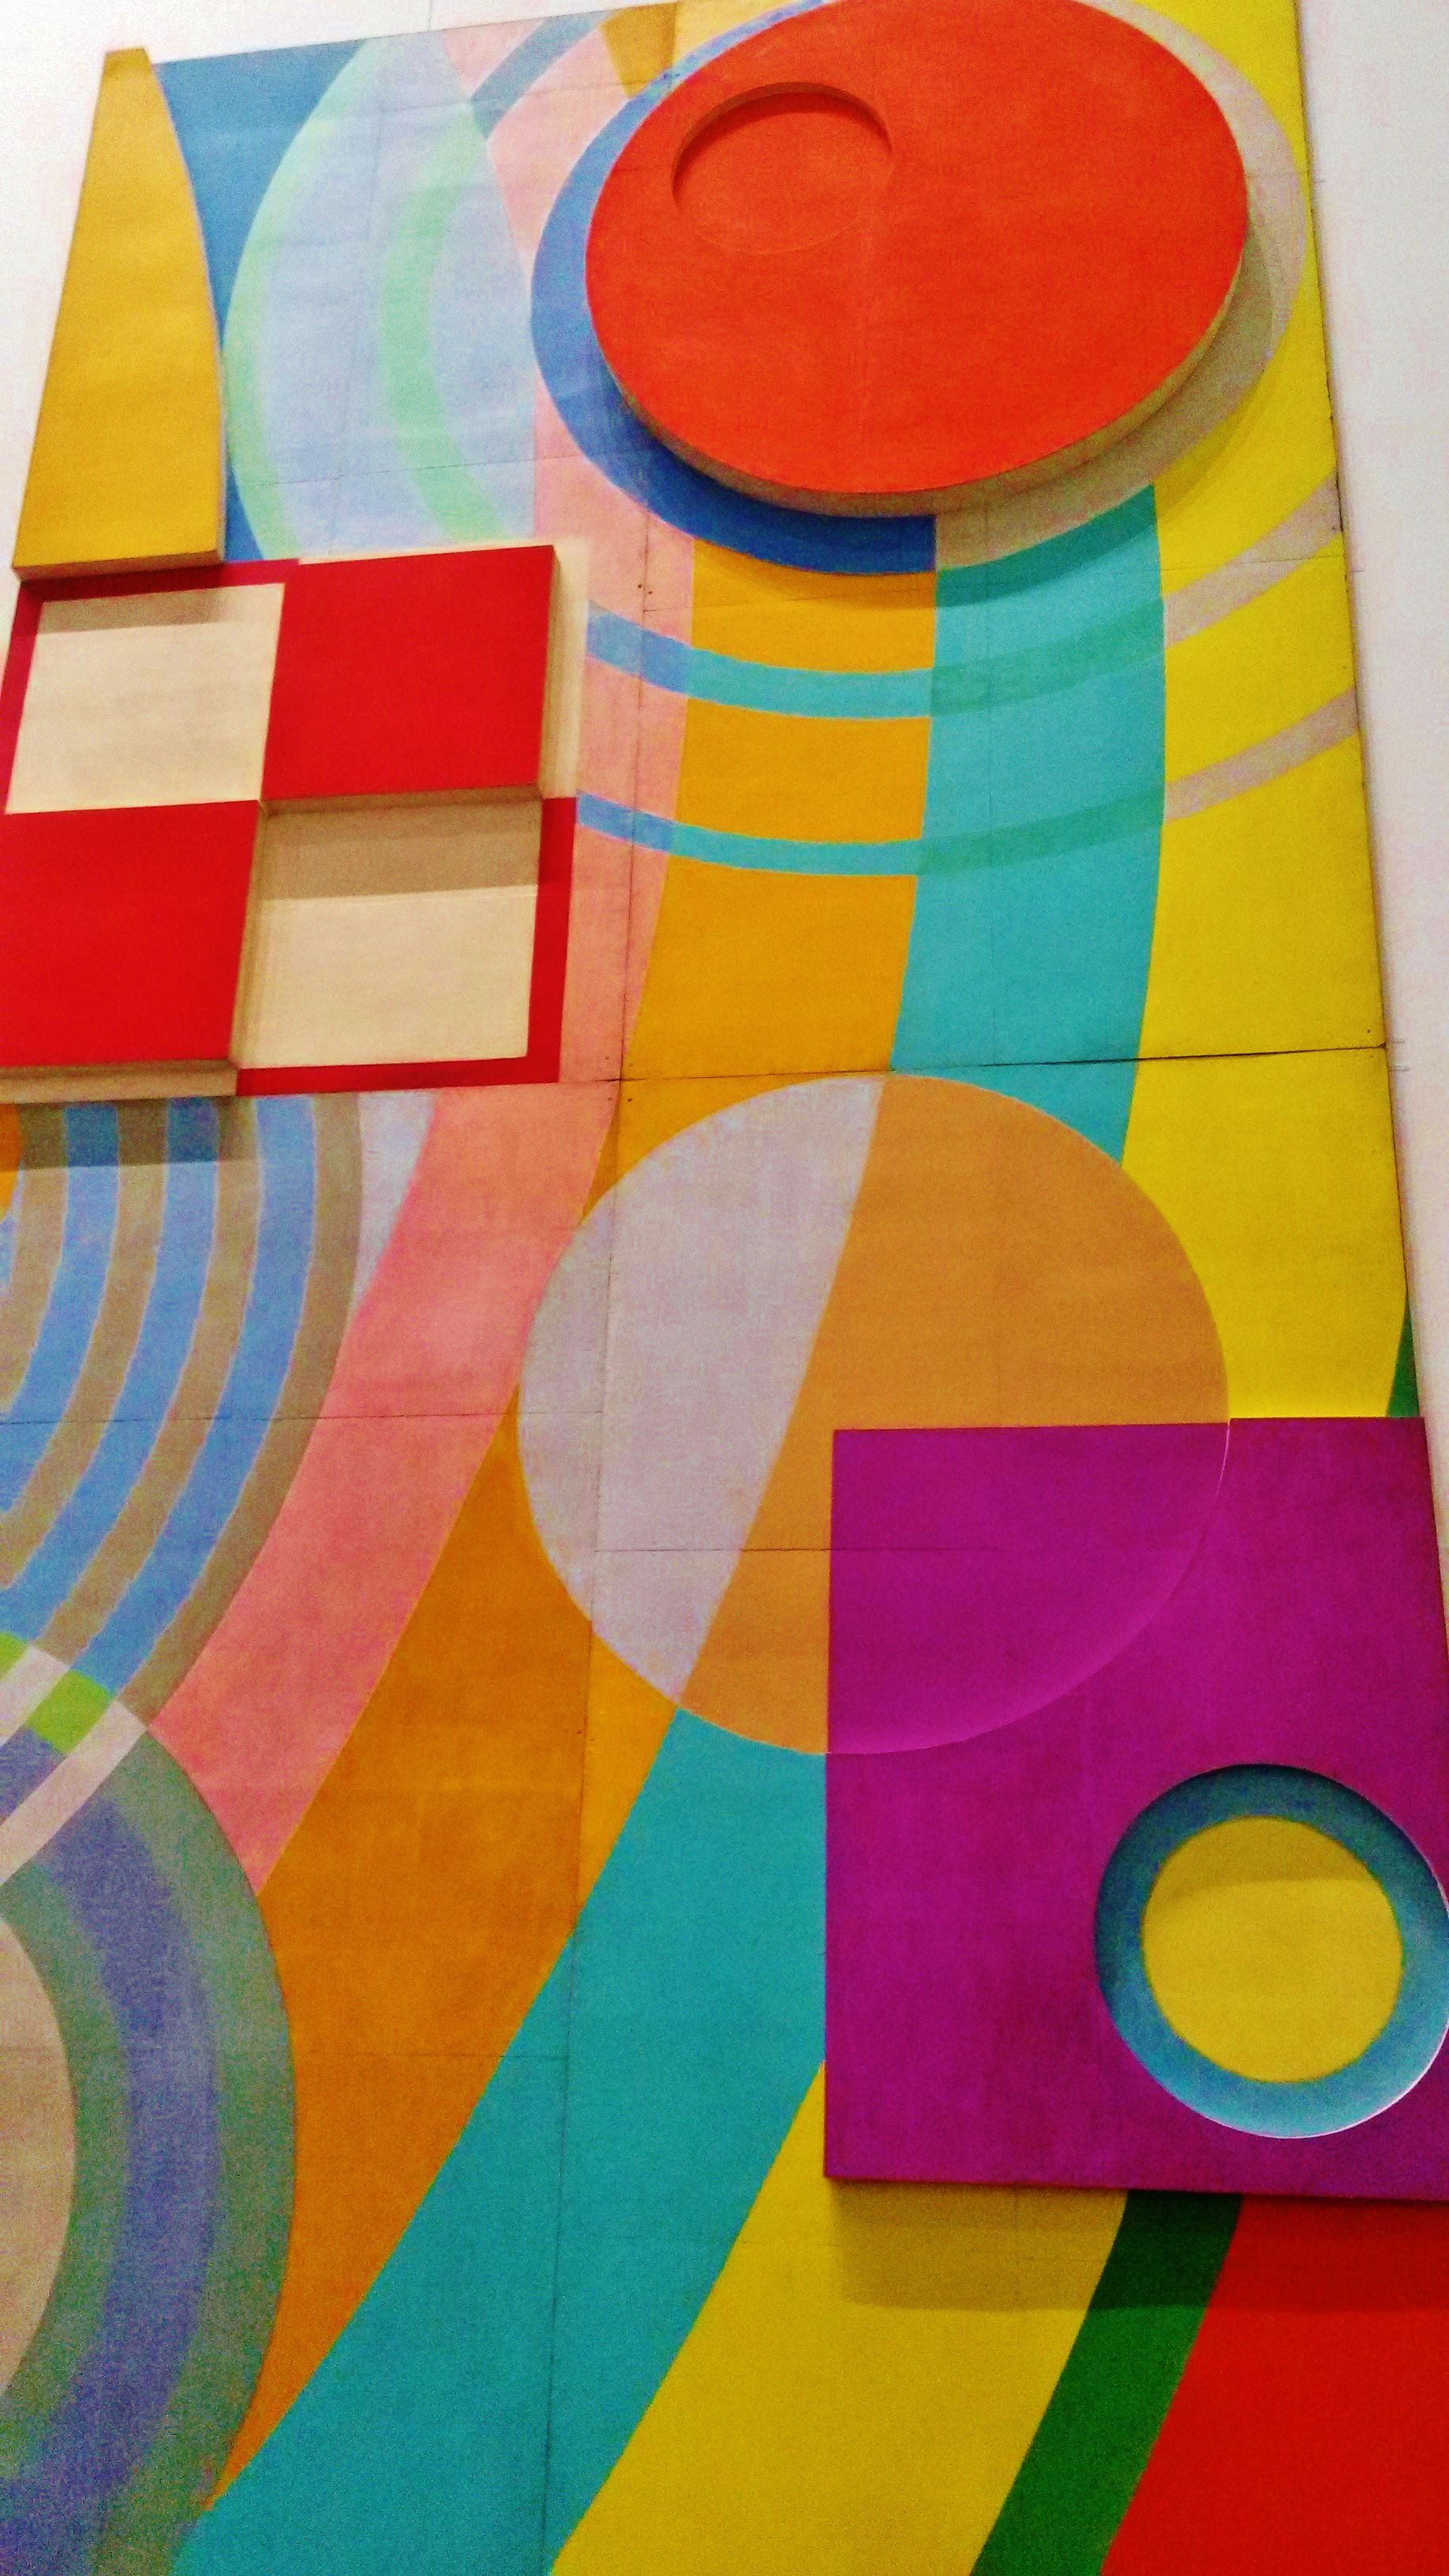 Robert Delaunay - Centre Pompidou Metz | If I owned an art gallery ...